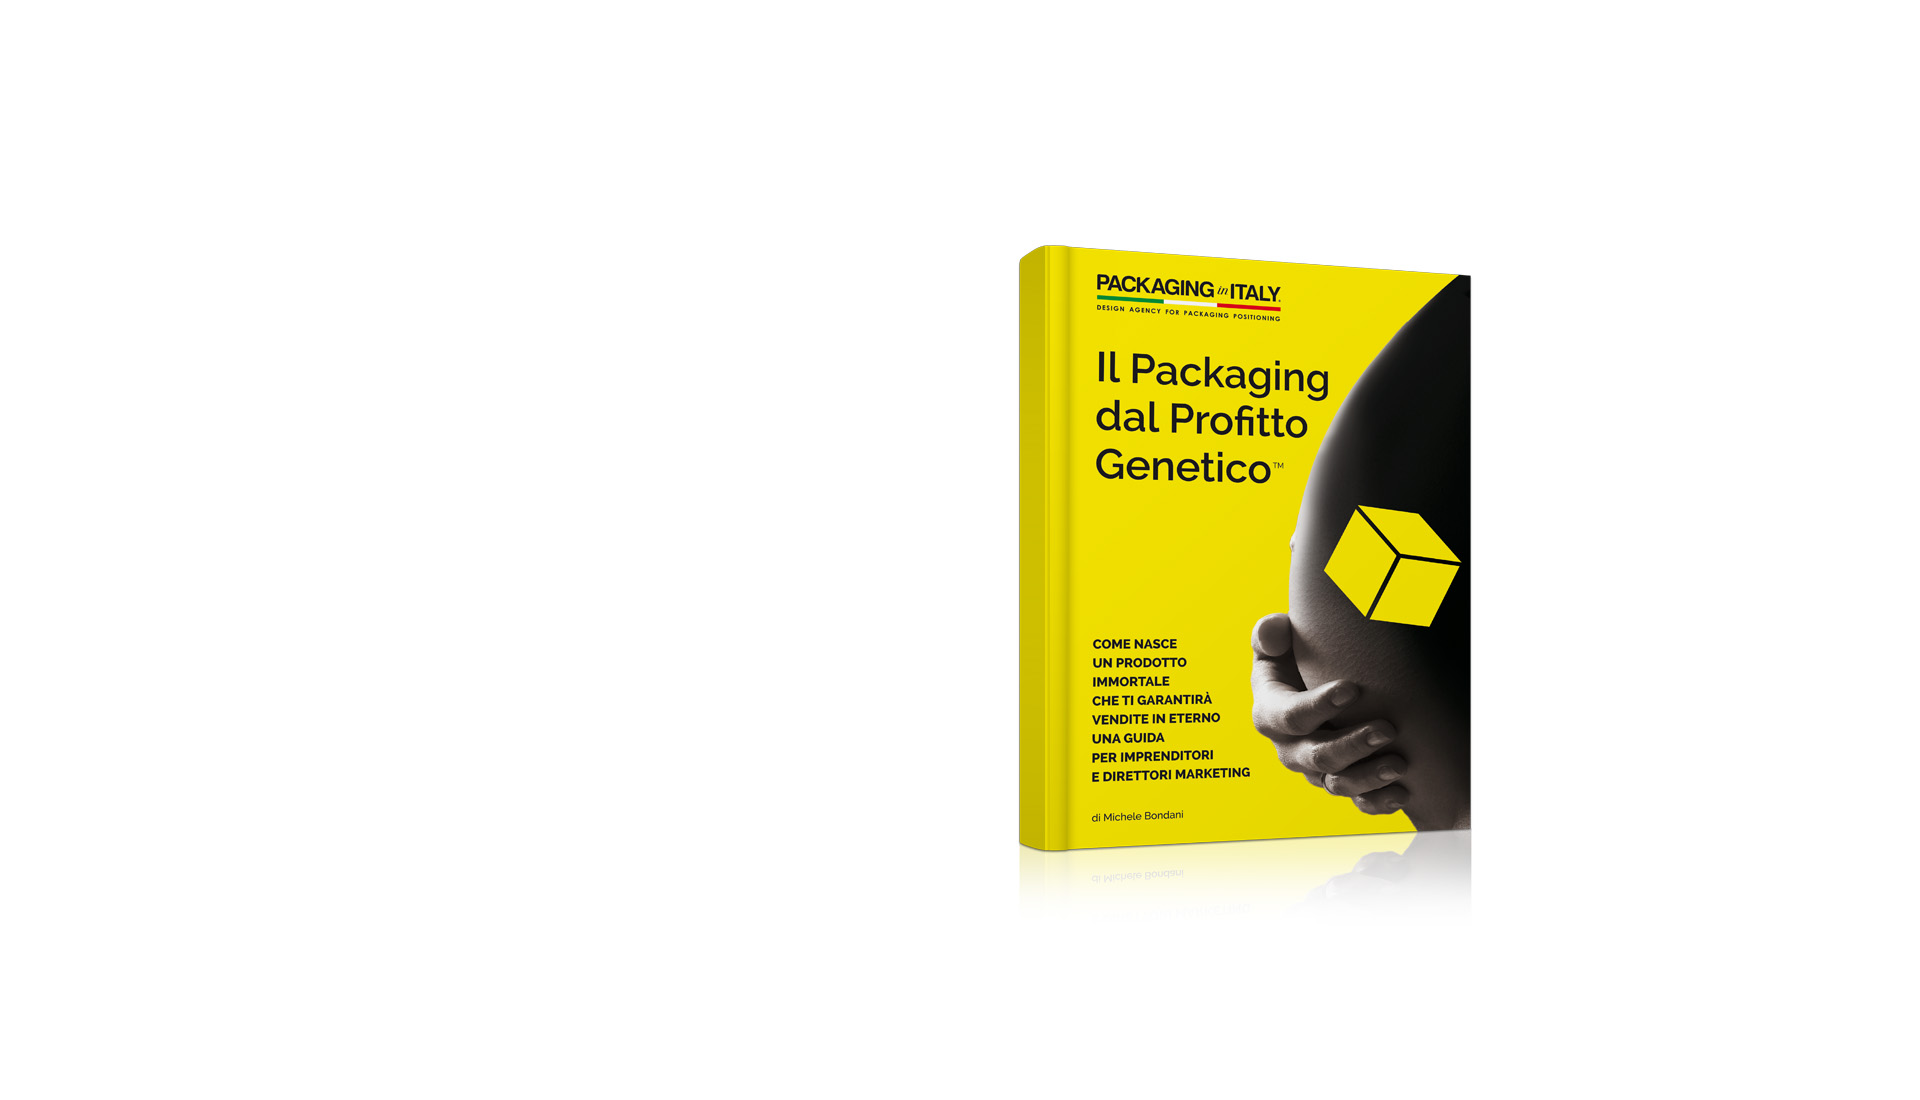 SLIDE 02 – IL PACKAGING DAL PROFITTO GENETICO™